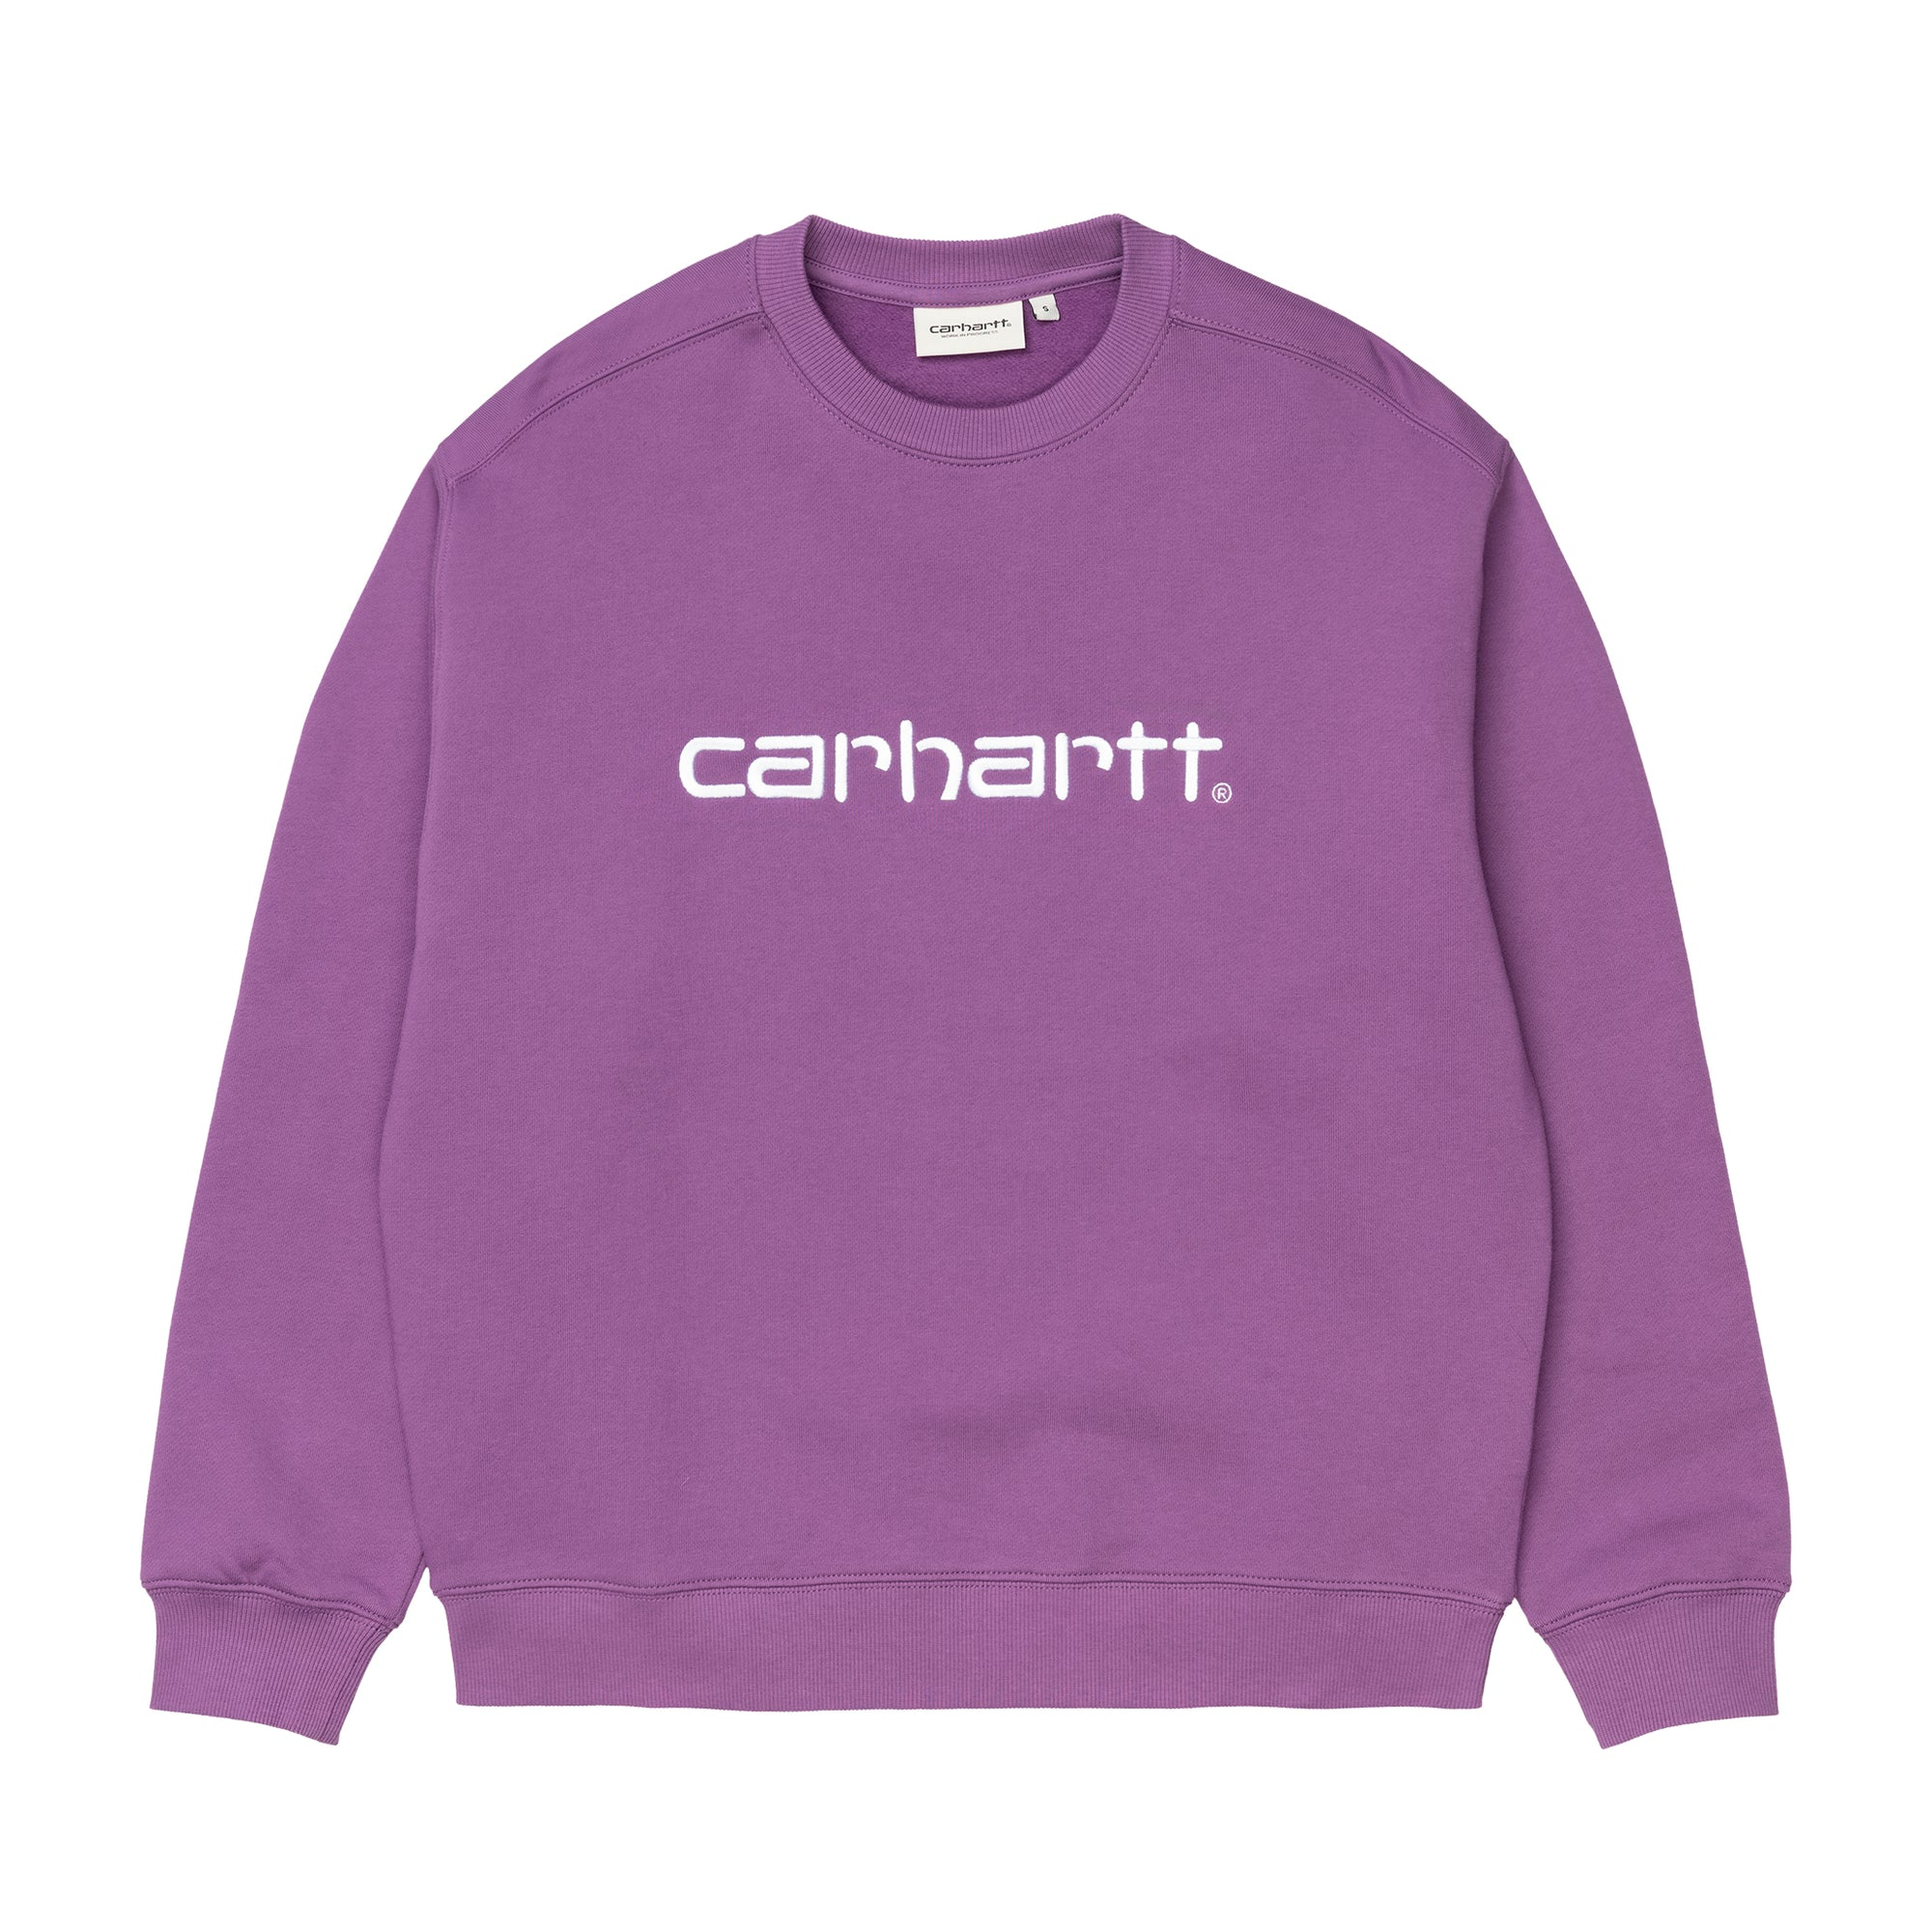 Carhartt WIP Womens Carhartt Sweat: Aster / White - The Union Project